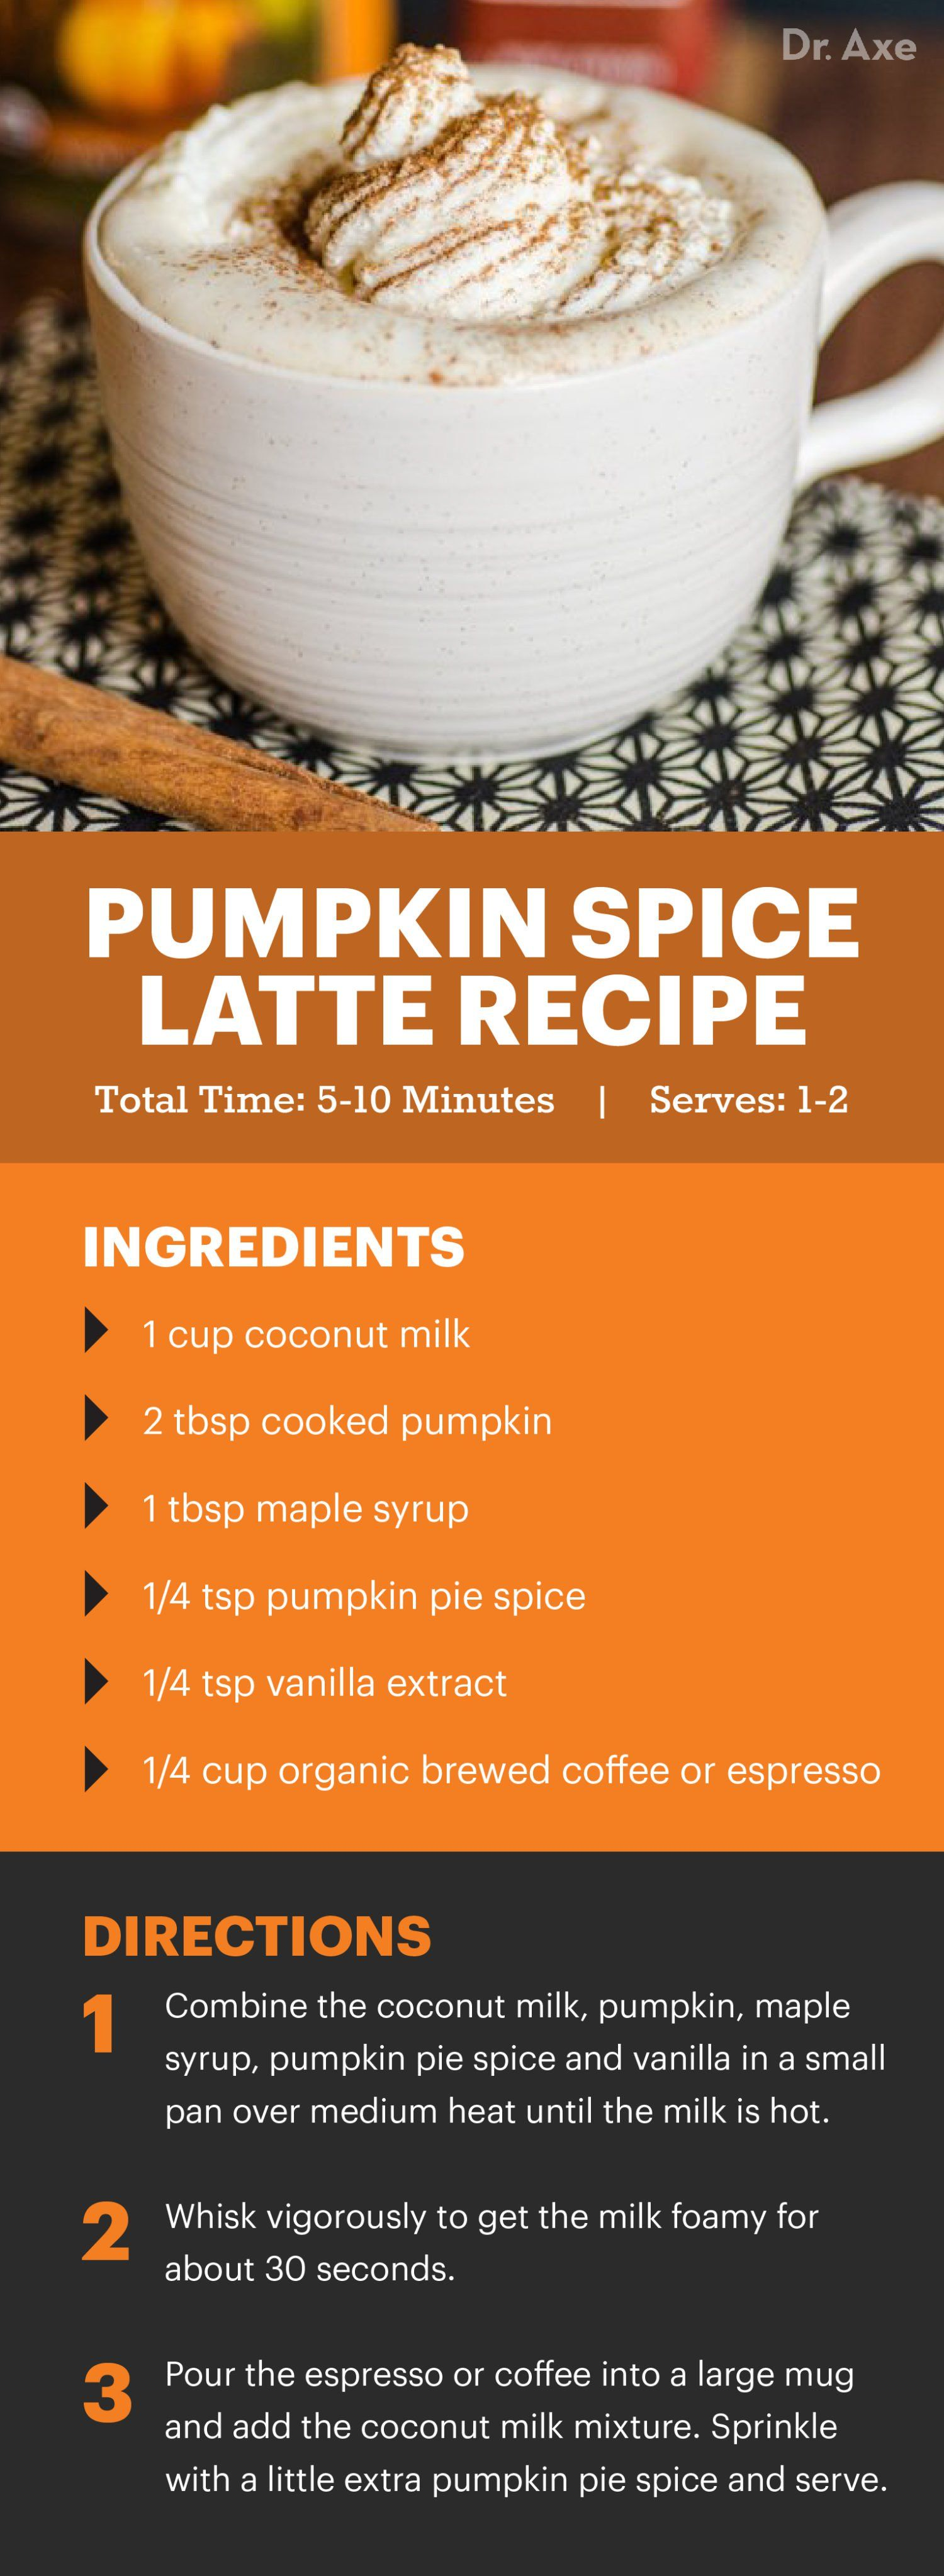 The One Pumpkin Spice Latte Ingredient to Avoid This Fall #pumpkinspiceketocoffee